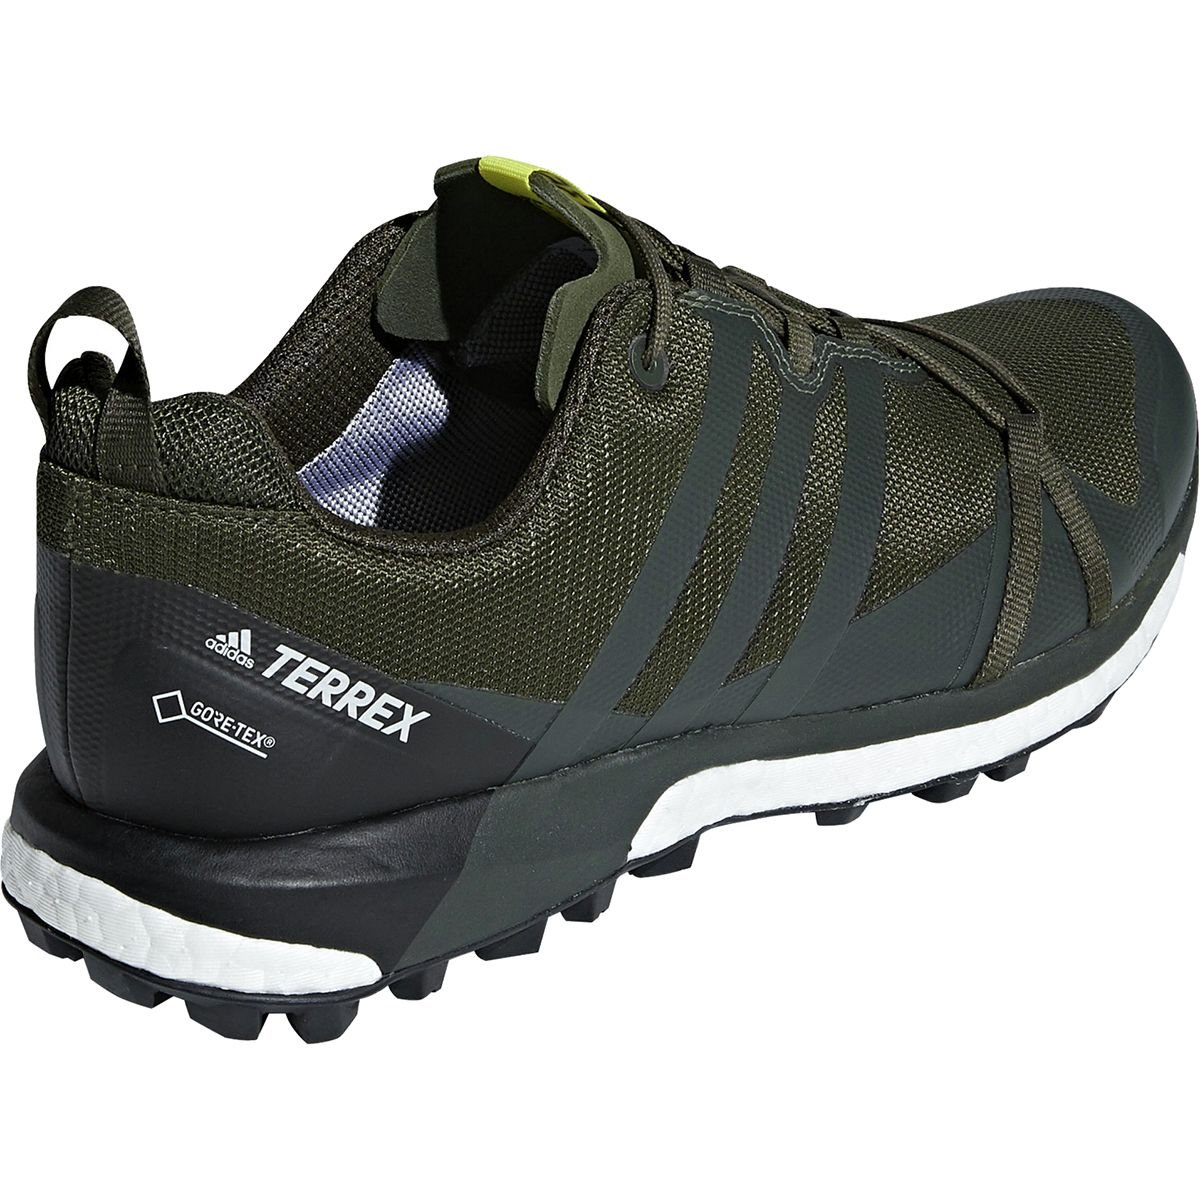 promo code b2c9e 9f98d Amazon.com   adidas outdoor Mens Terrex Agravic GTX Shoe   Trail Running